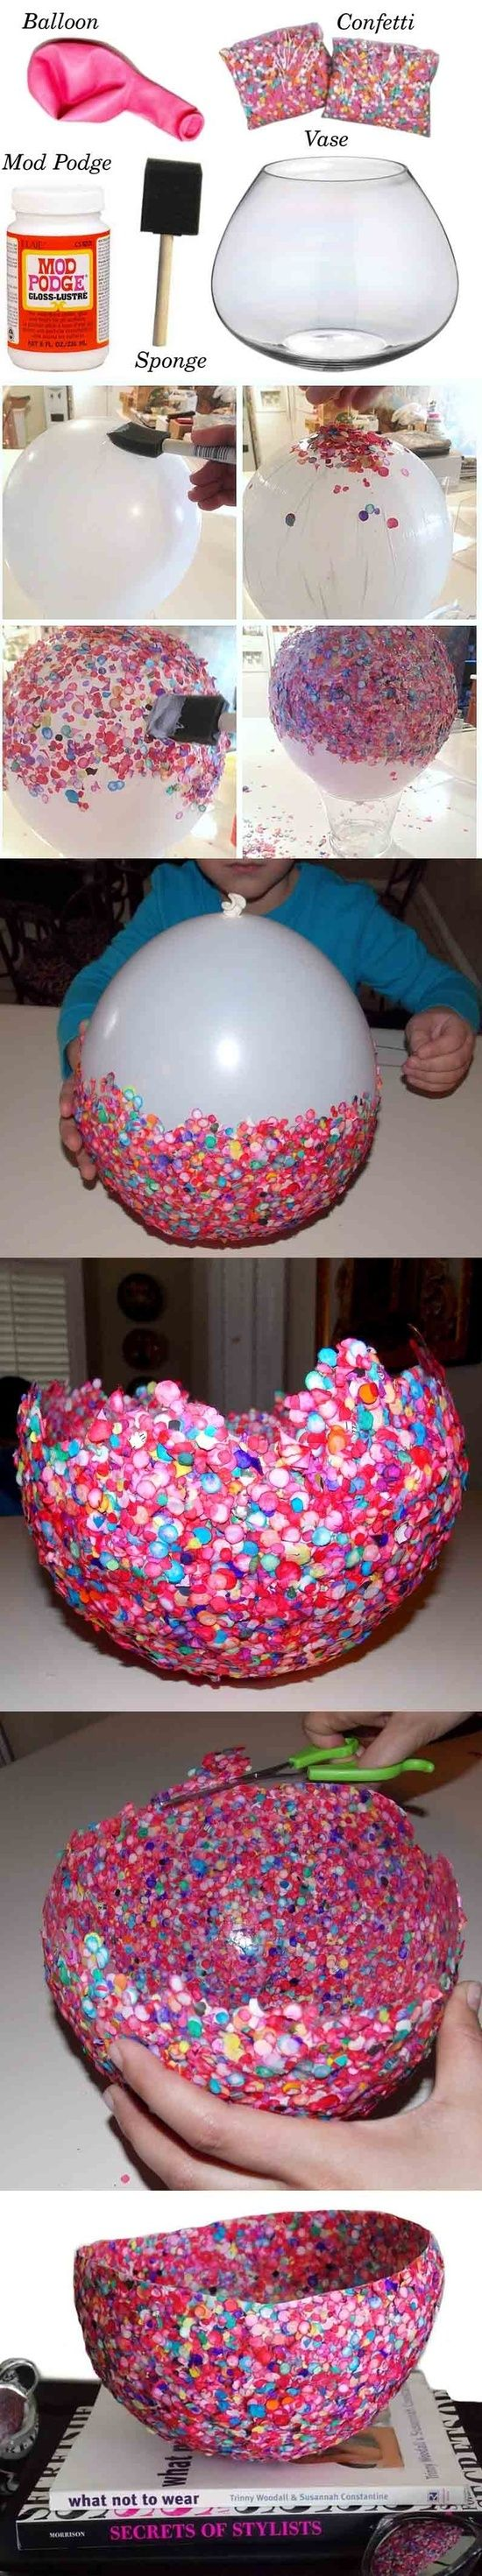 Cool confetti bowl! - inspiring picture on Joyzz.com